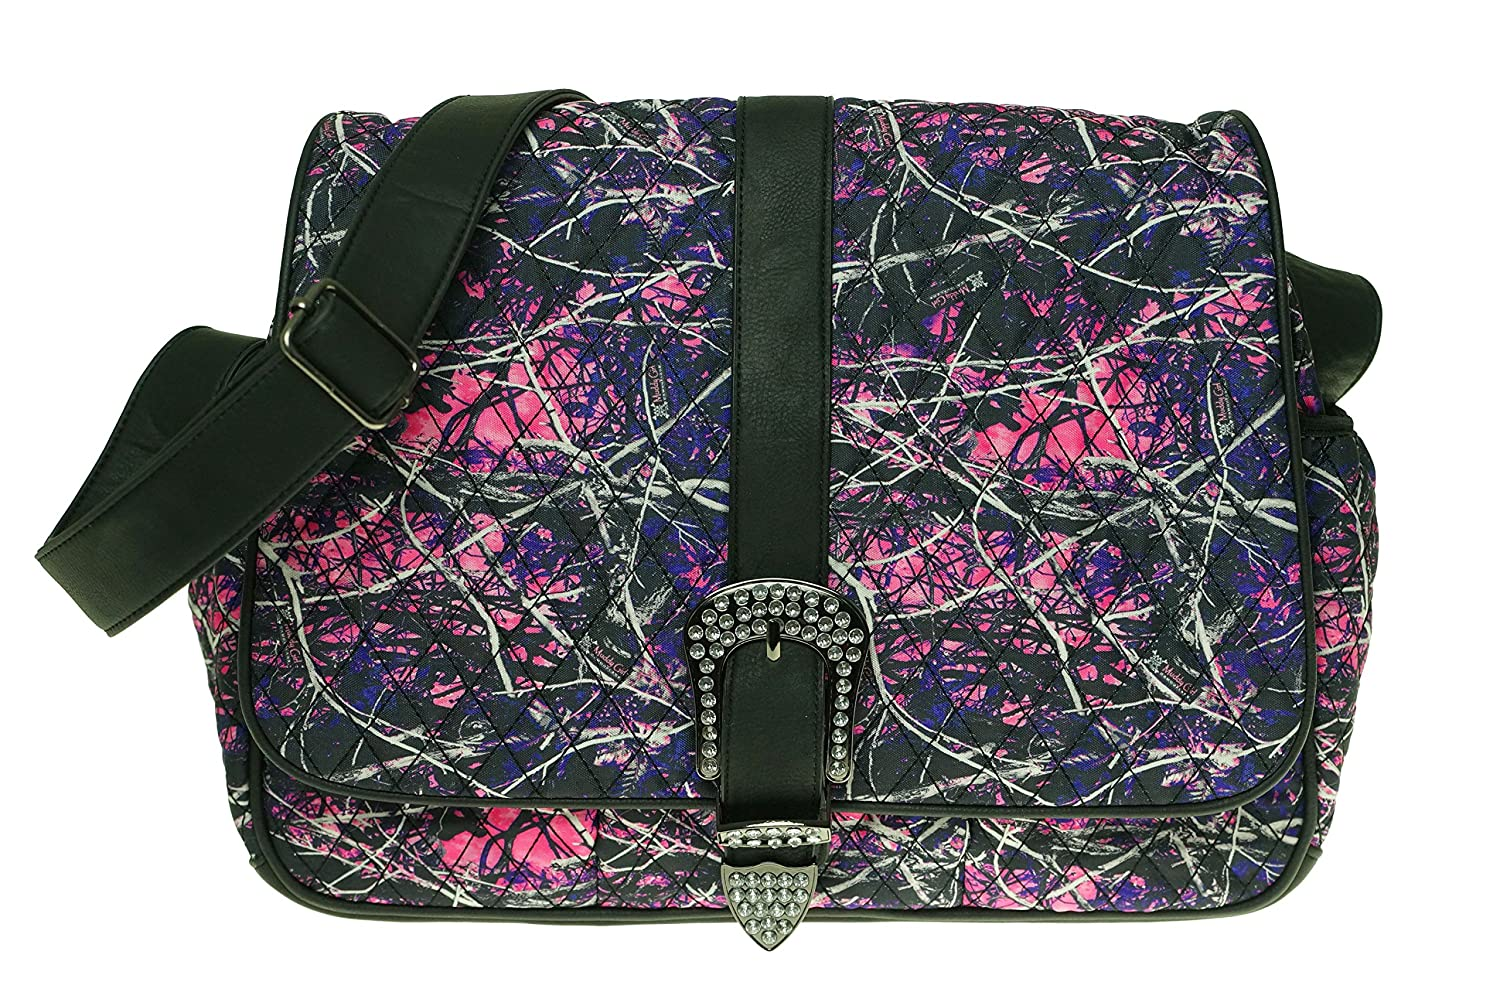 Amazon.com : Muddy Girl Pink Purple Camo Quilted Diaper Bag ... : quilted camo diaper bag - Adamdwight.com